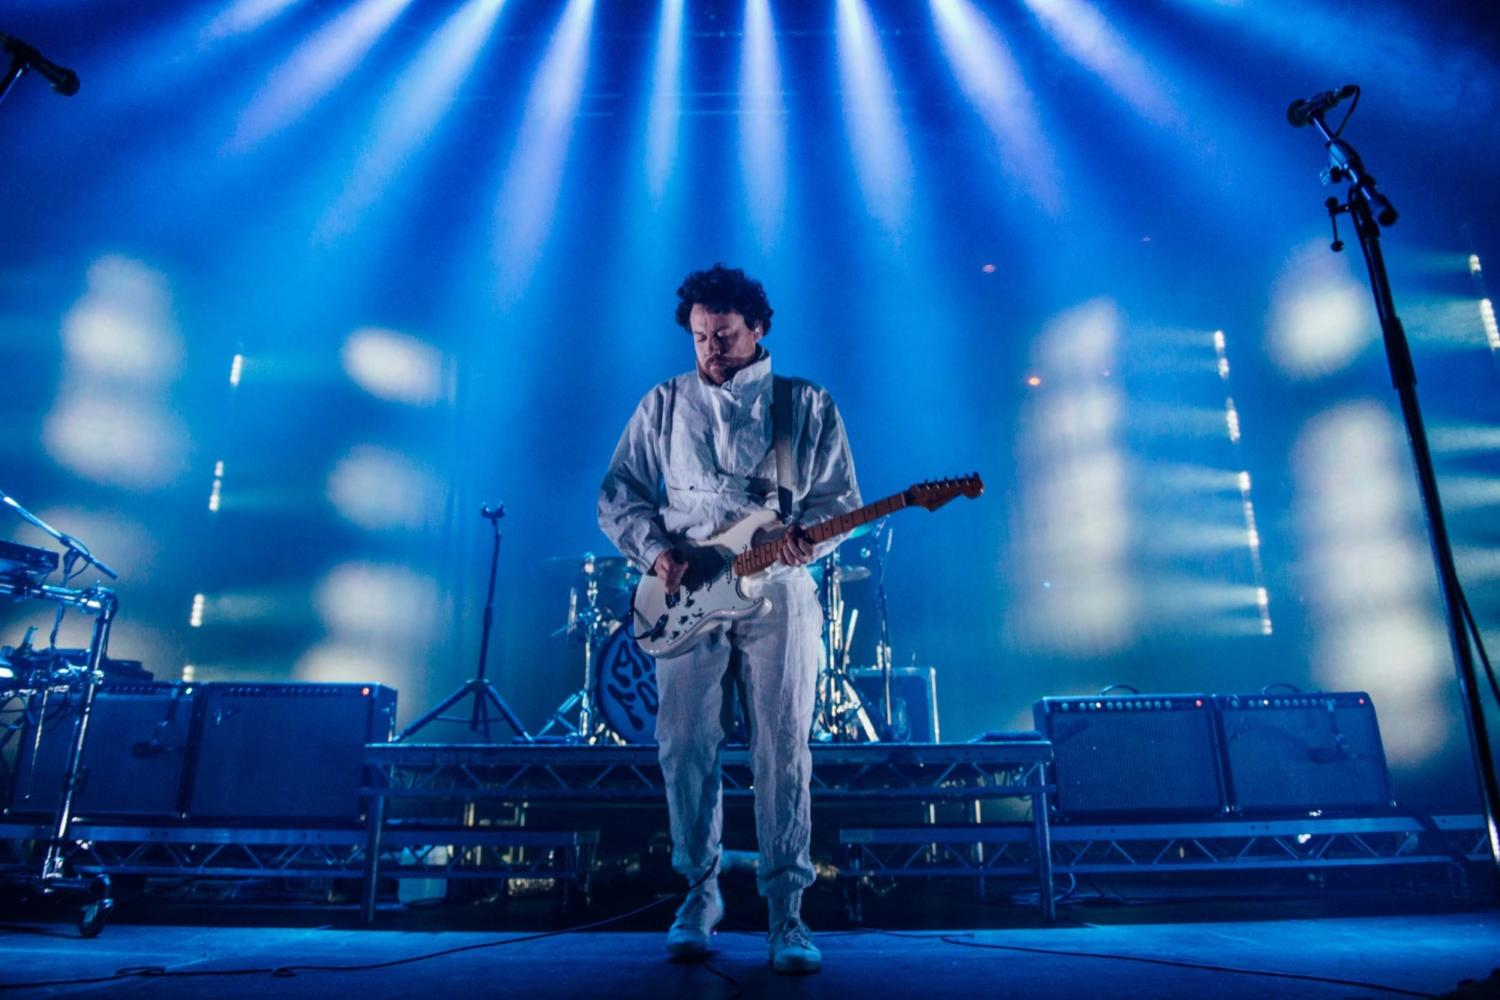 Metronomy, Courtney Barnett, Squid and more announced for Iceland Airwaves 2020